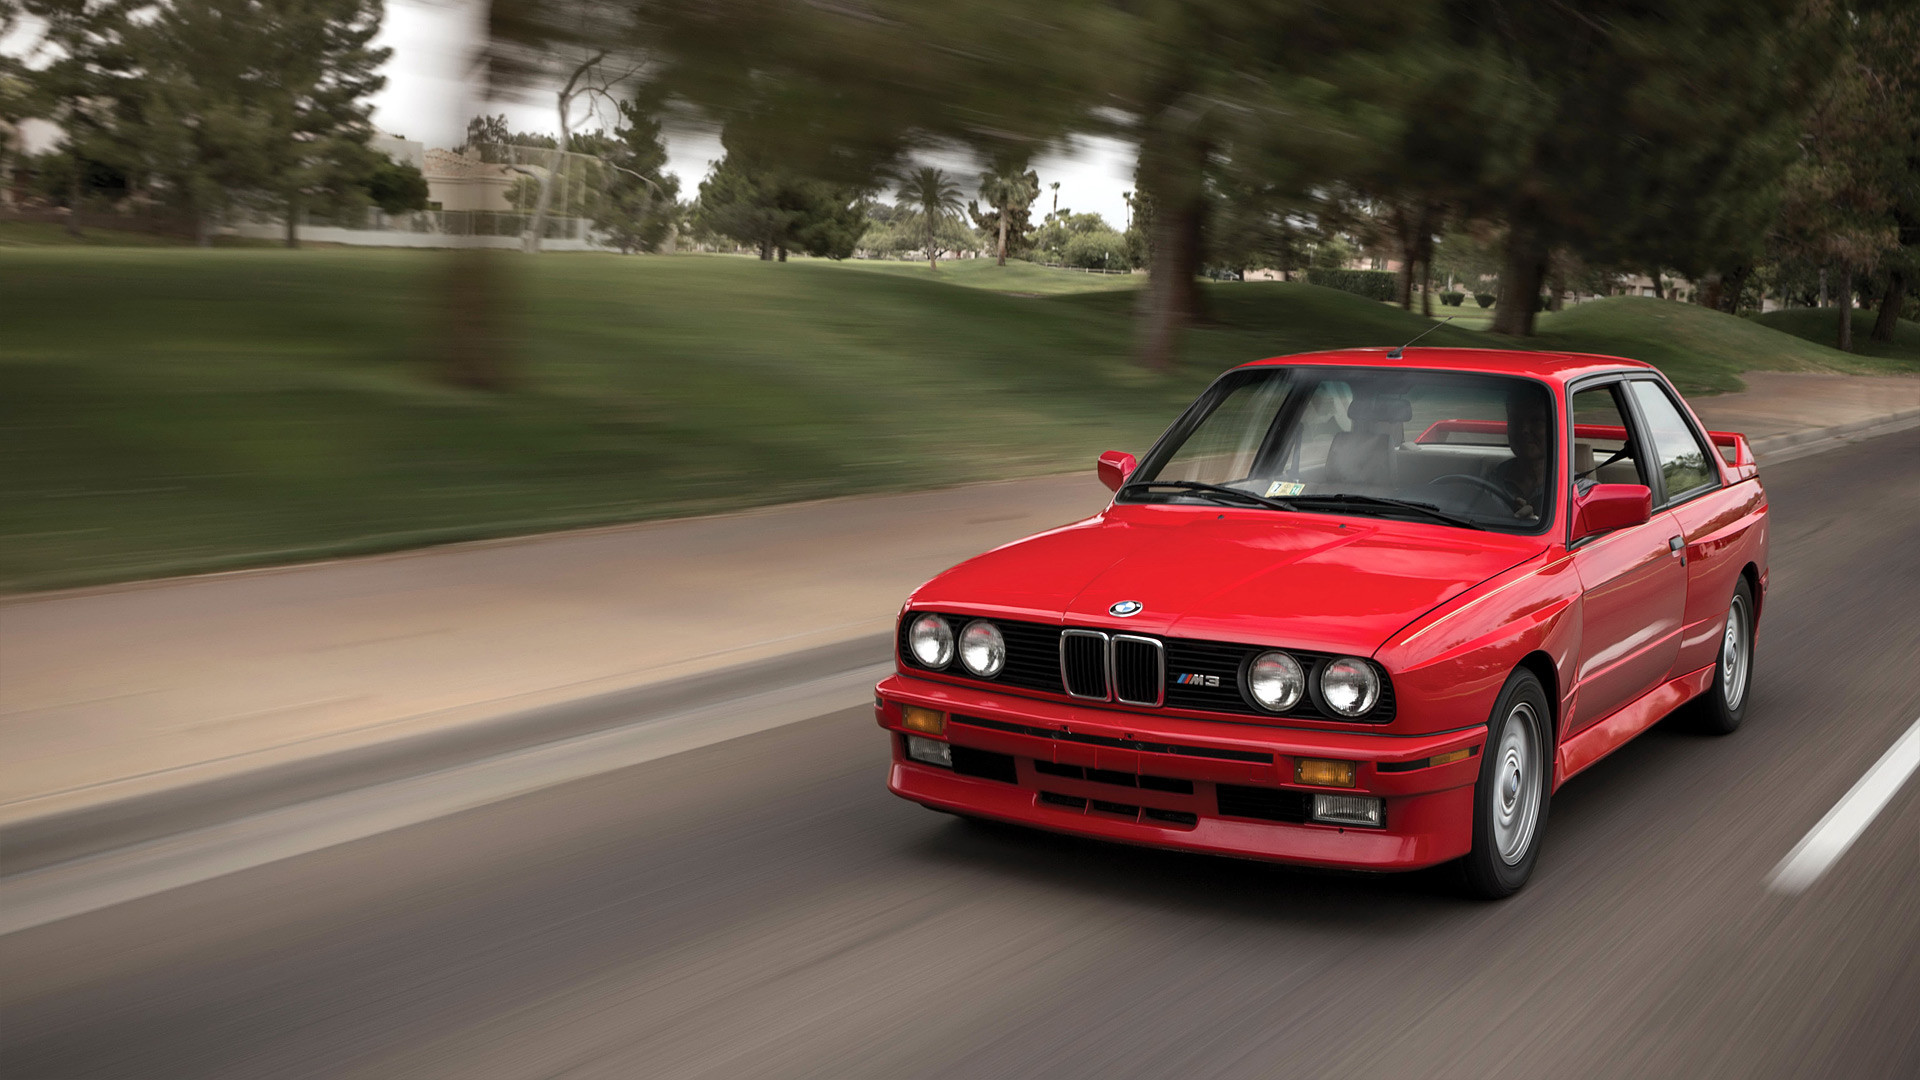 BMW E30 M3 Wallpaper (65+ images)